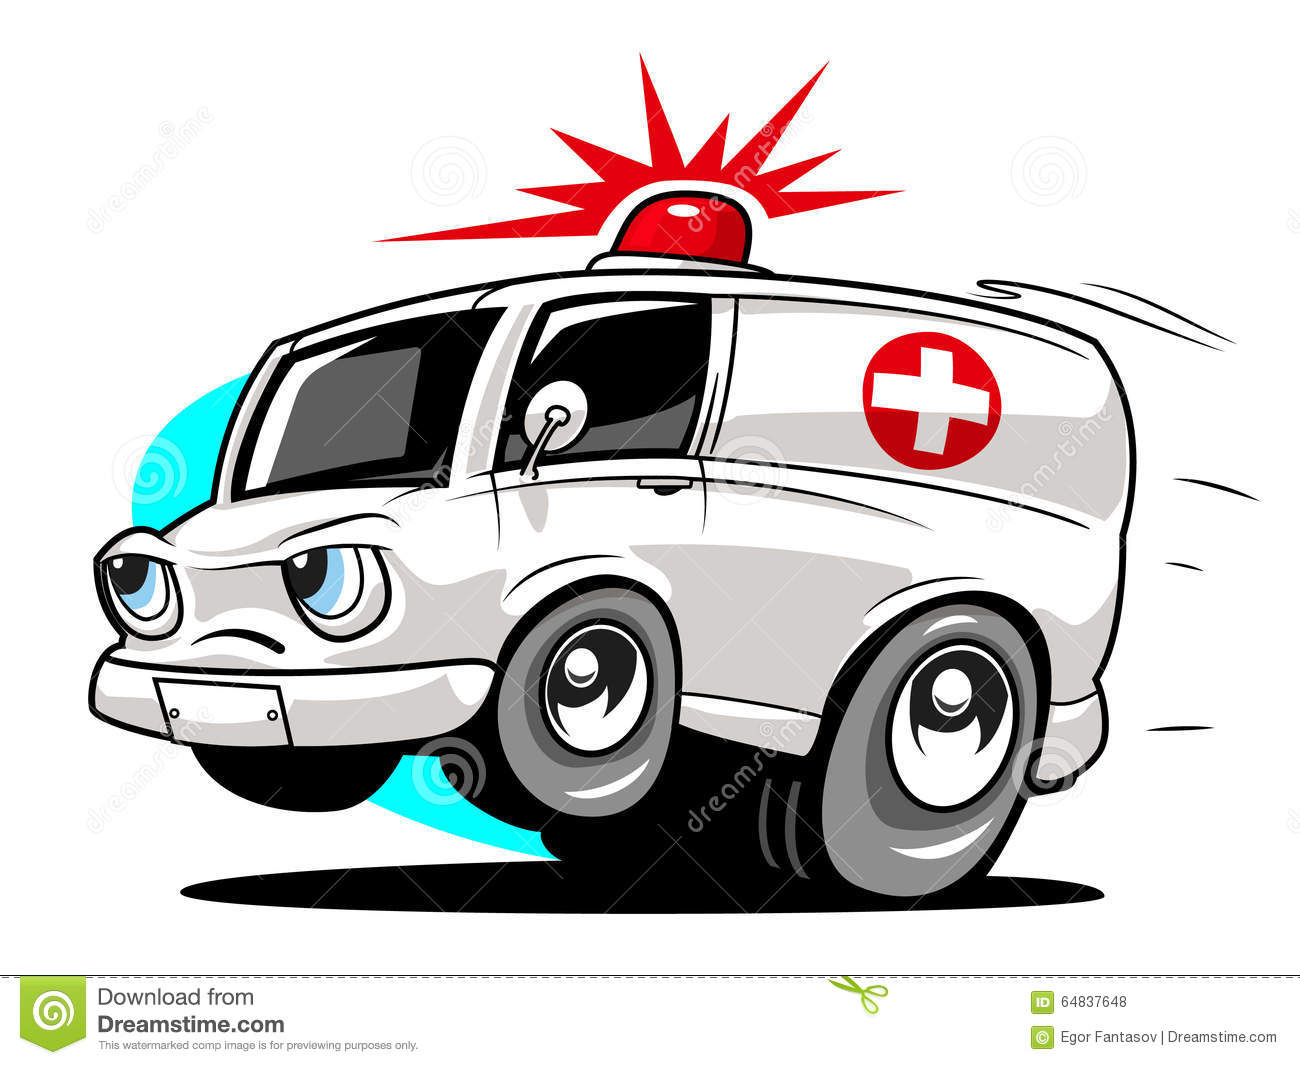 cartoon ambulance stock vector illustration of door clip art ambulance chaser clip art ambulance person falling out